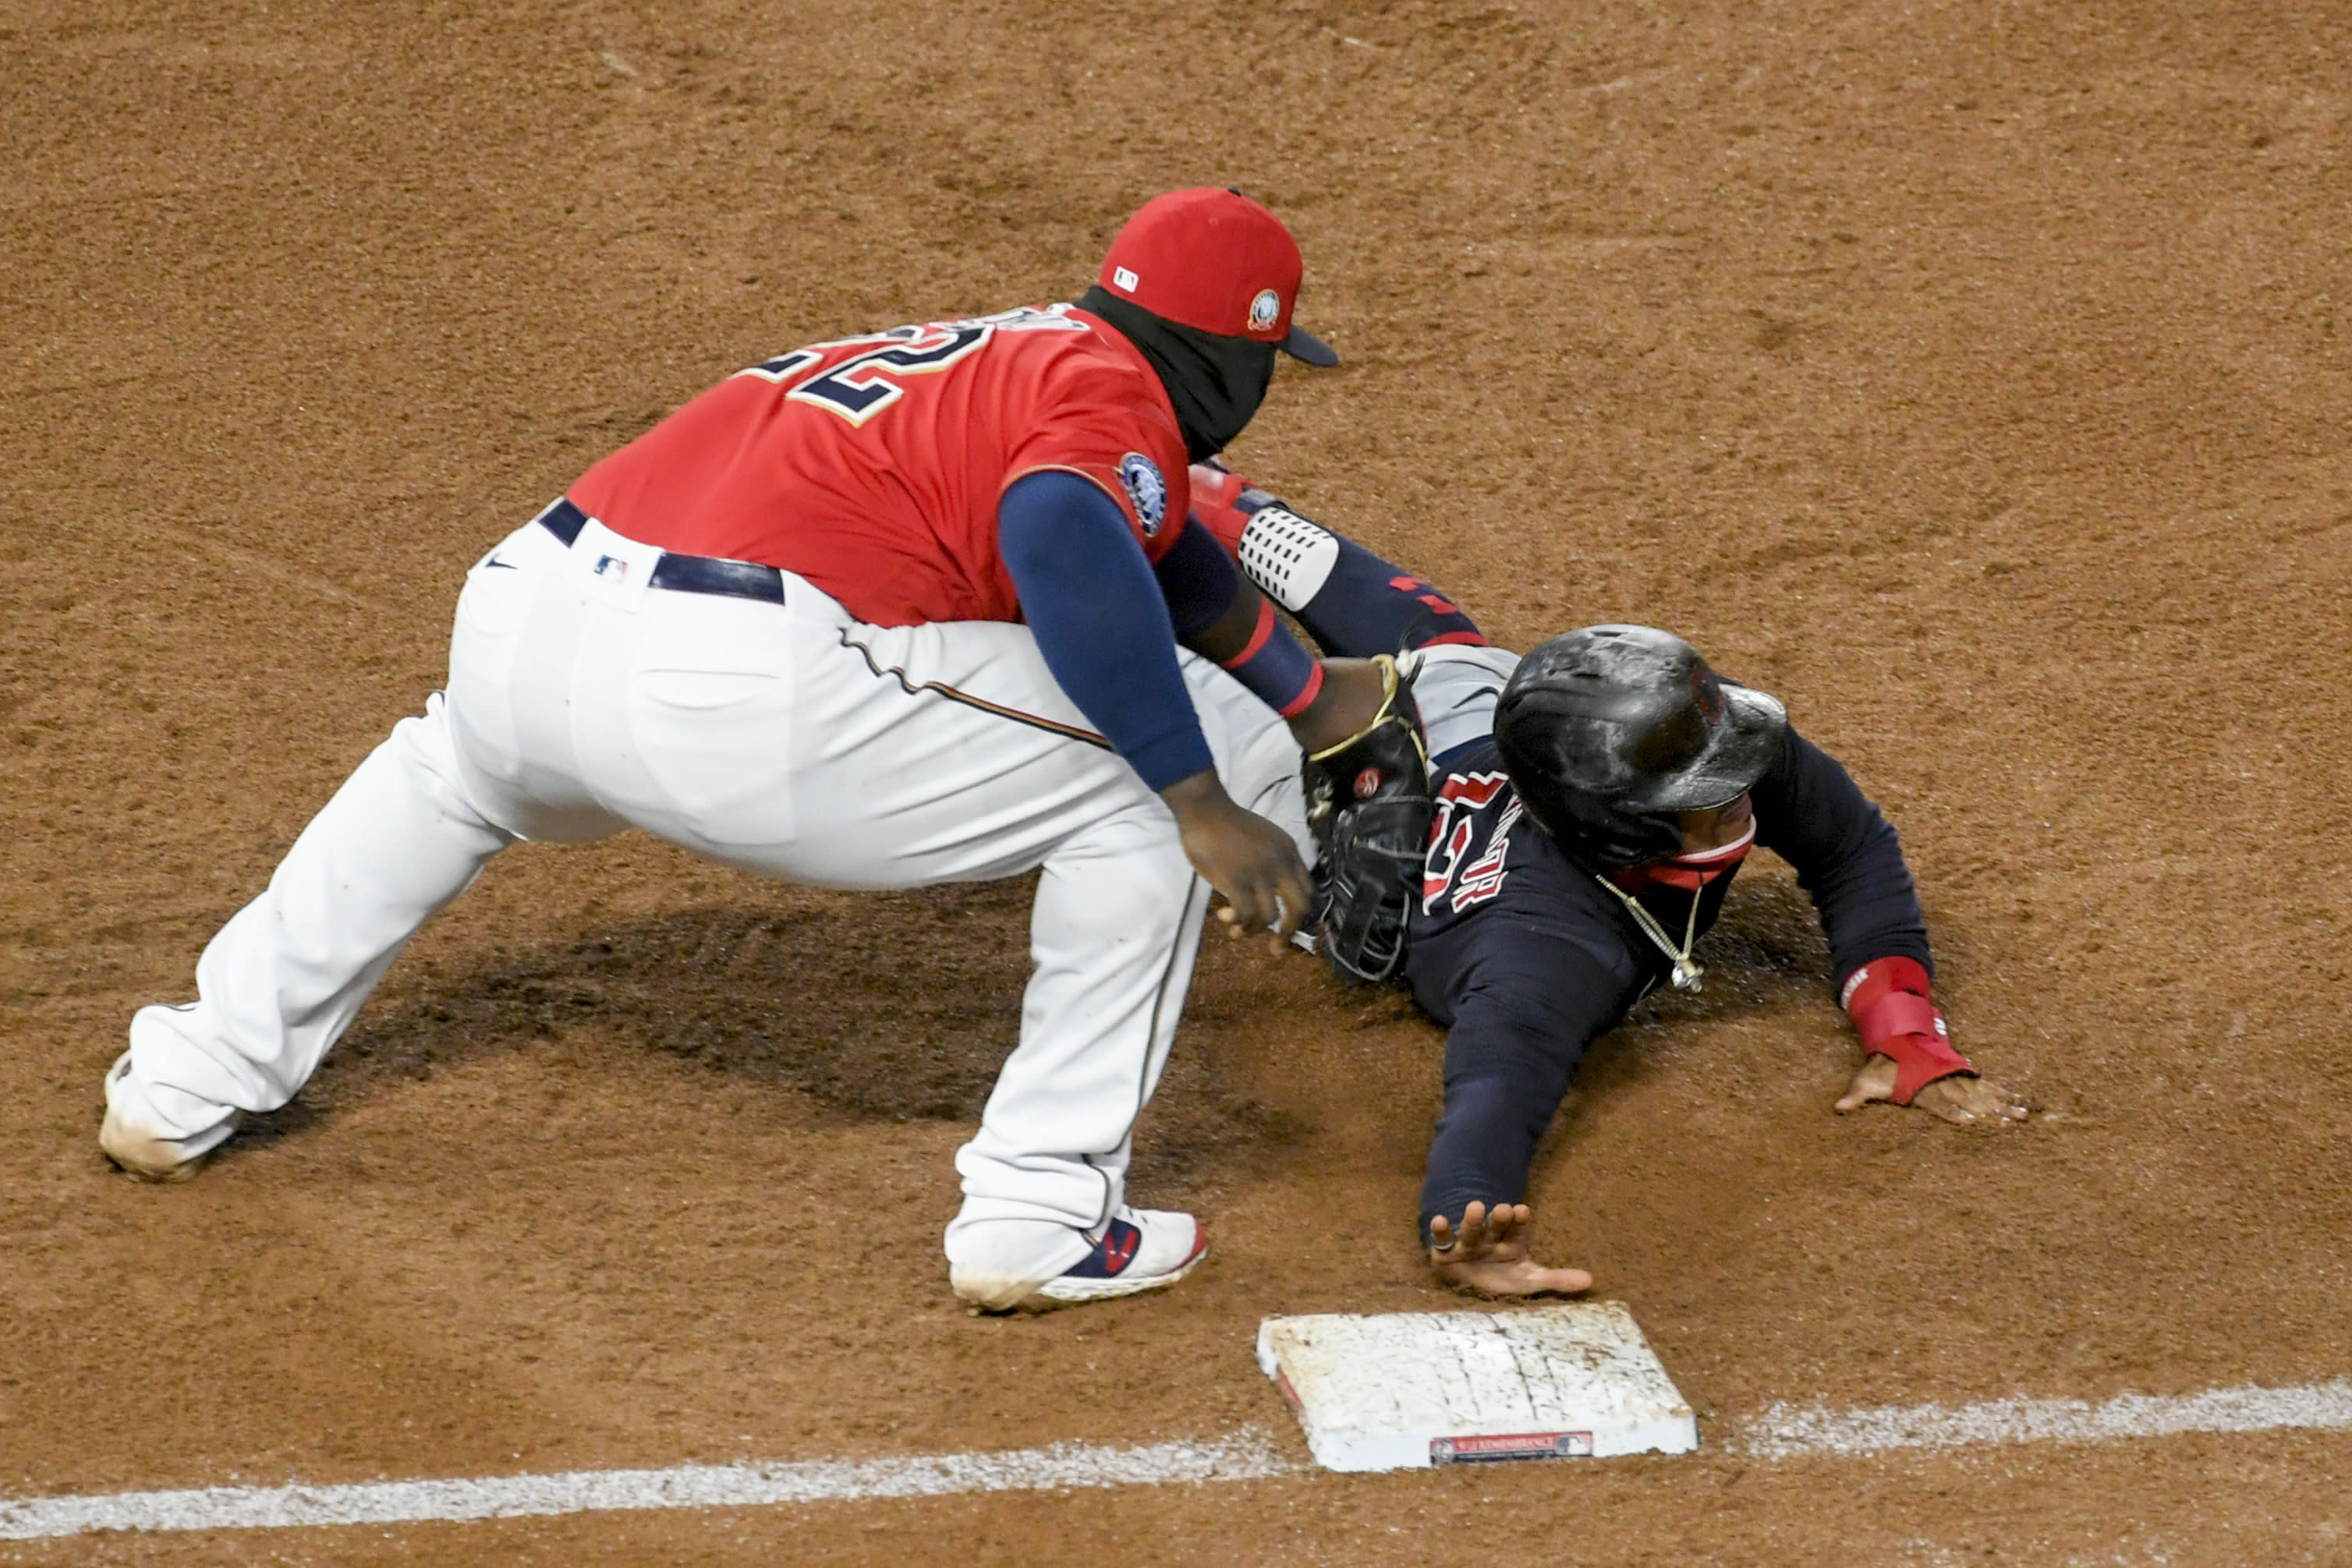 Minnesota Twins first baseman Miguel Sano picks off Cleveland Indians Francisco Lindor as Lindor dives back to first during the sixth inning of a baseball game Friday, Sept. 11, 2020, in Minneapolis. (AP Photo/Craig Lassig)